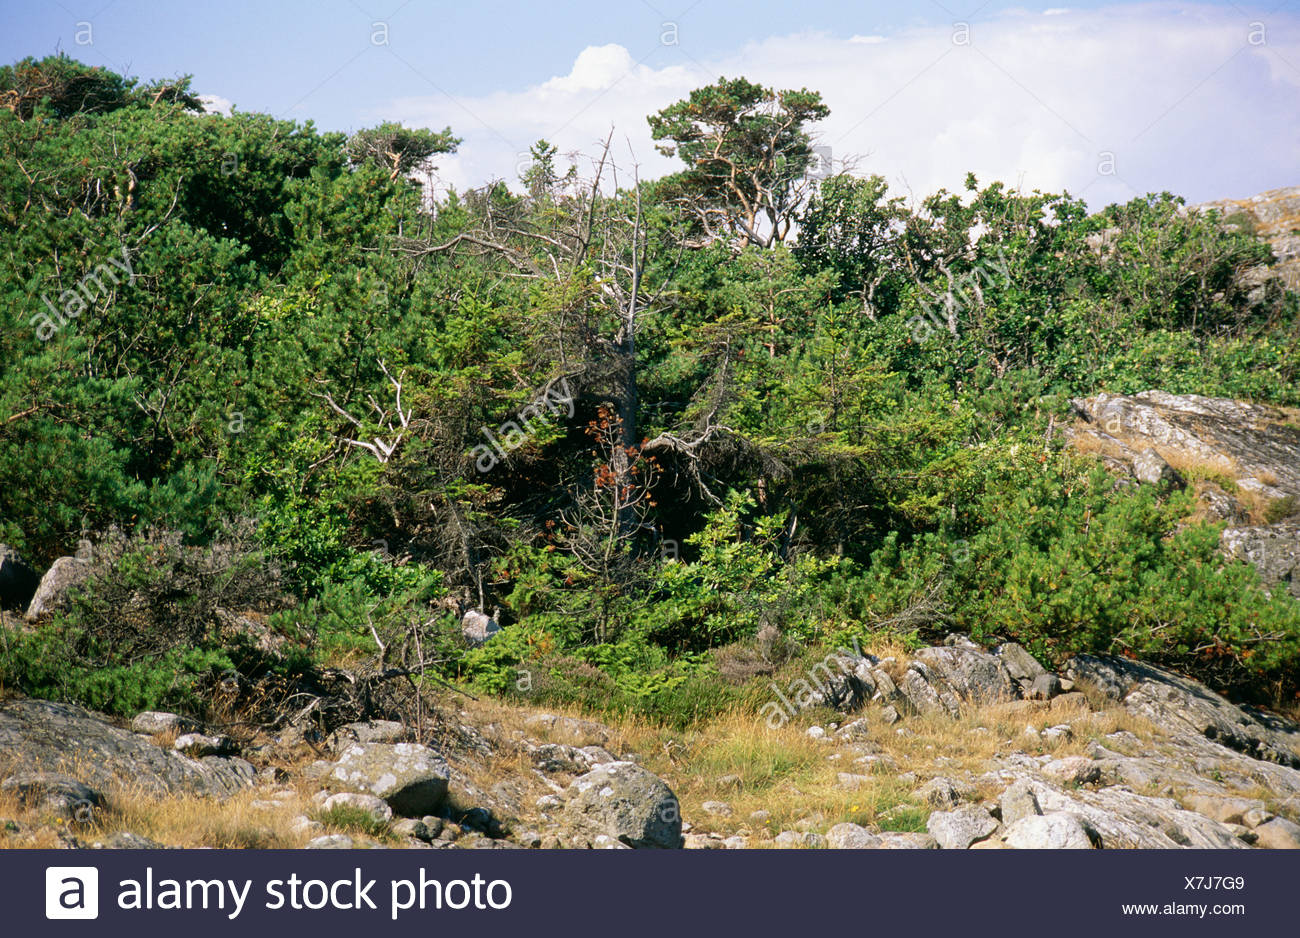 View of landscape with lush flora - Stock Image